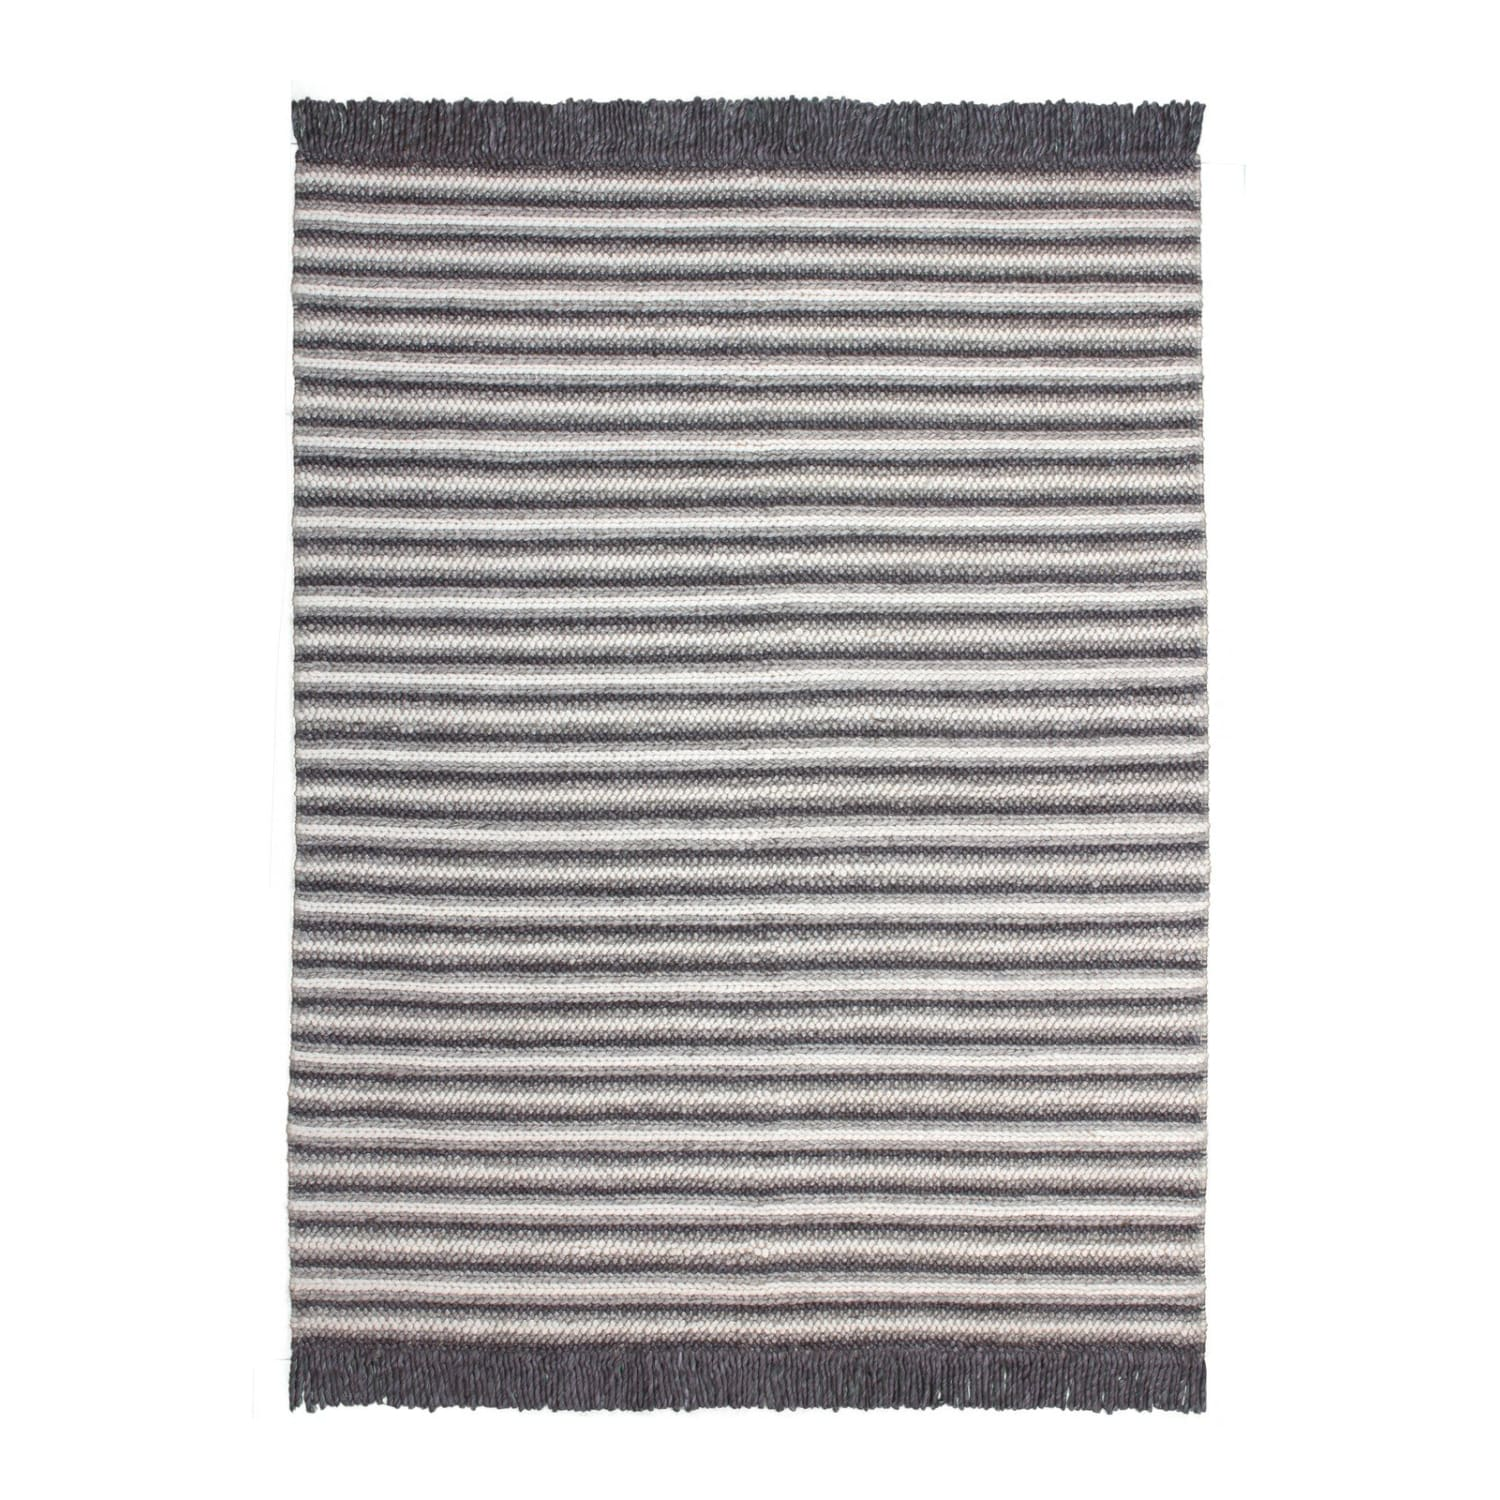 Tapis France - Natura 310 Naturel - Anthracite